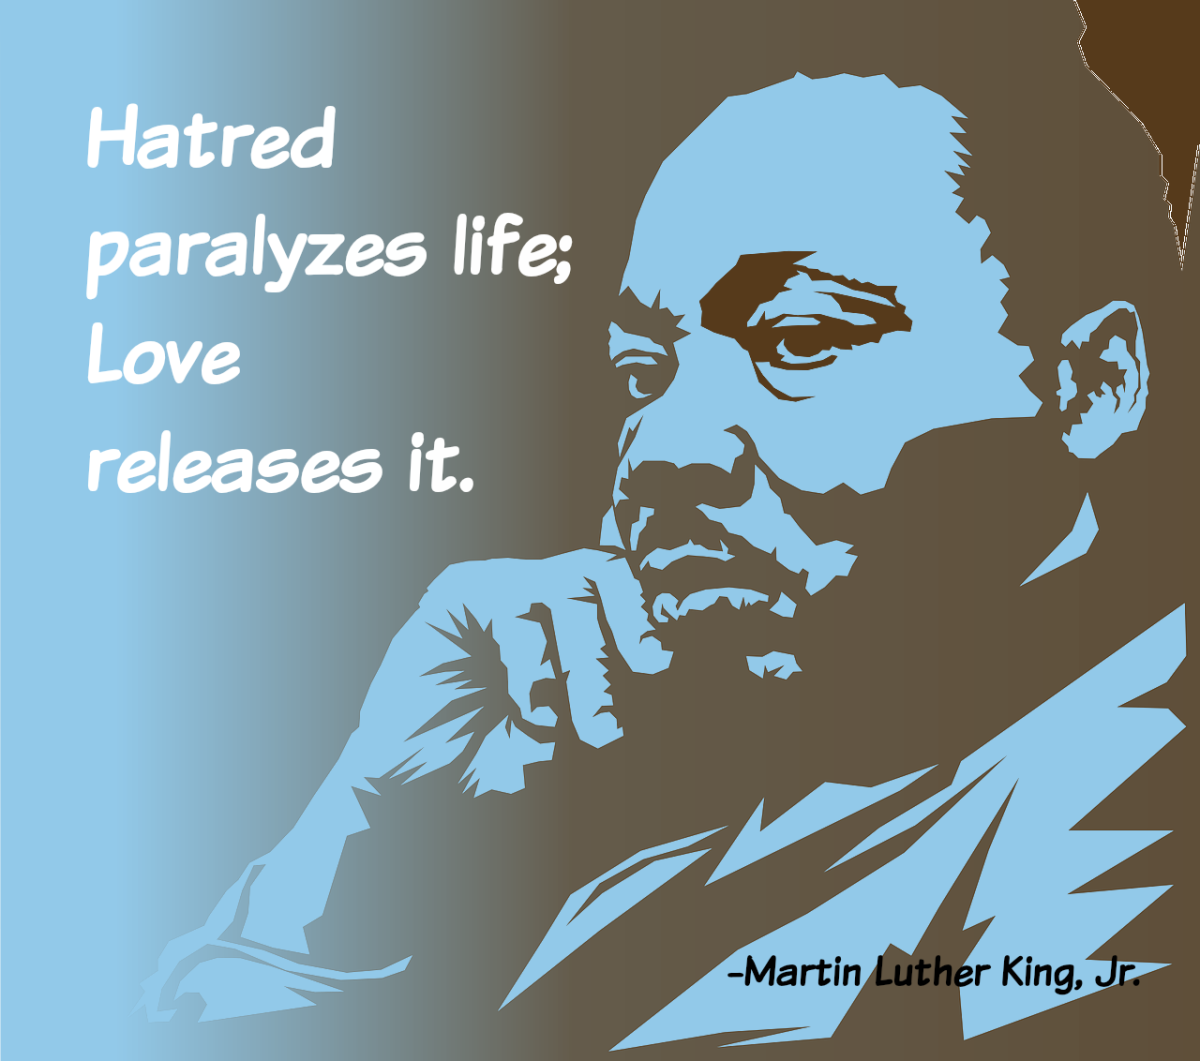 Martin Luther King, Jr. believed in the power of love to overcome hate.